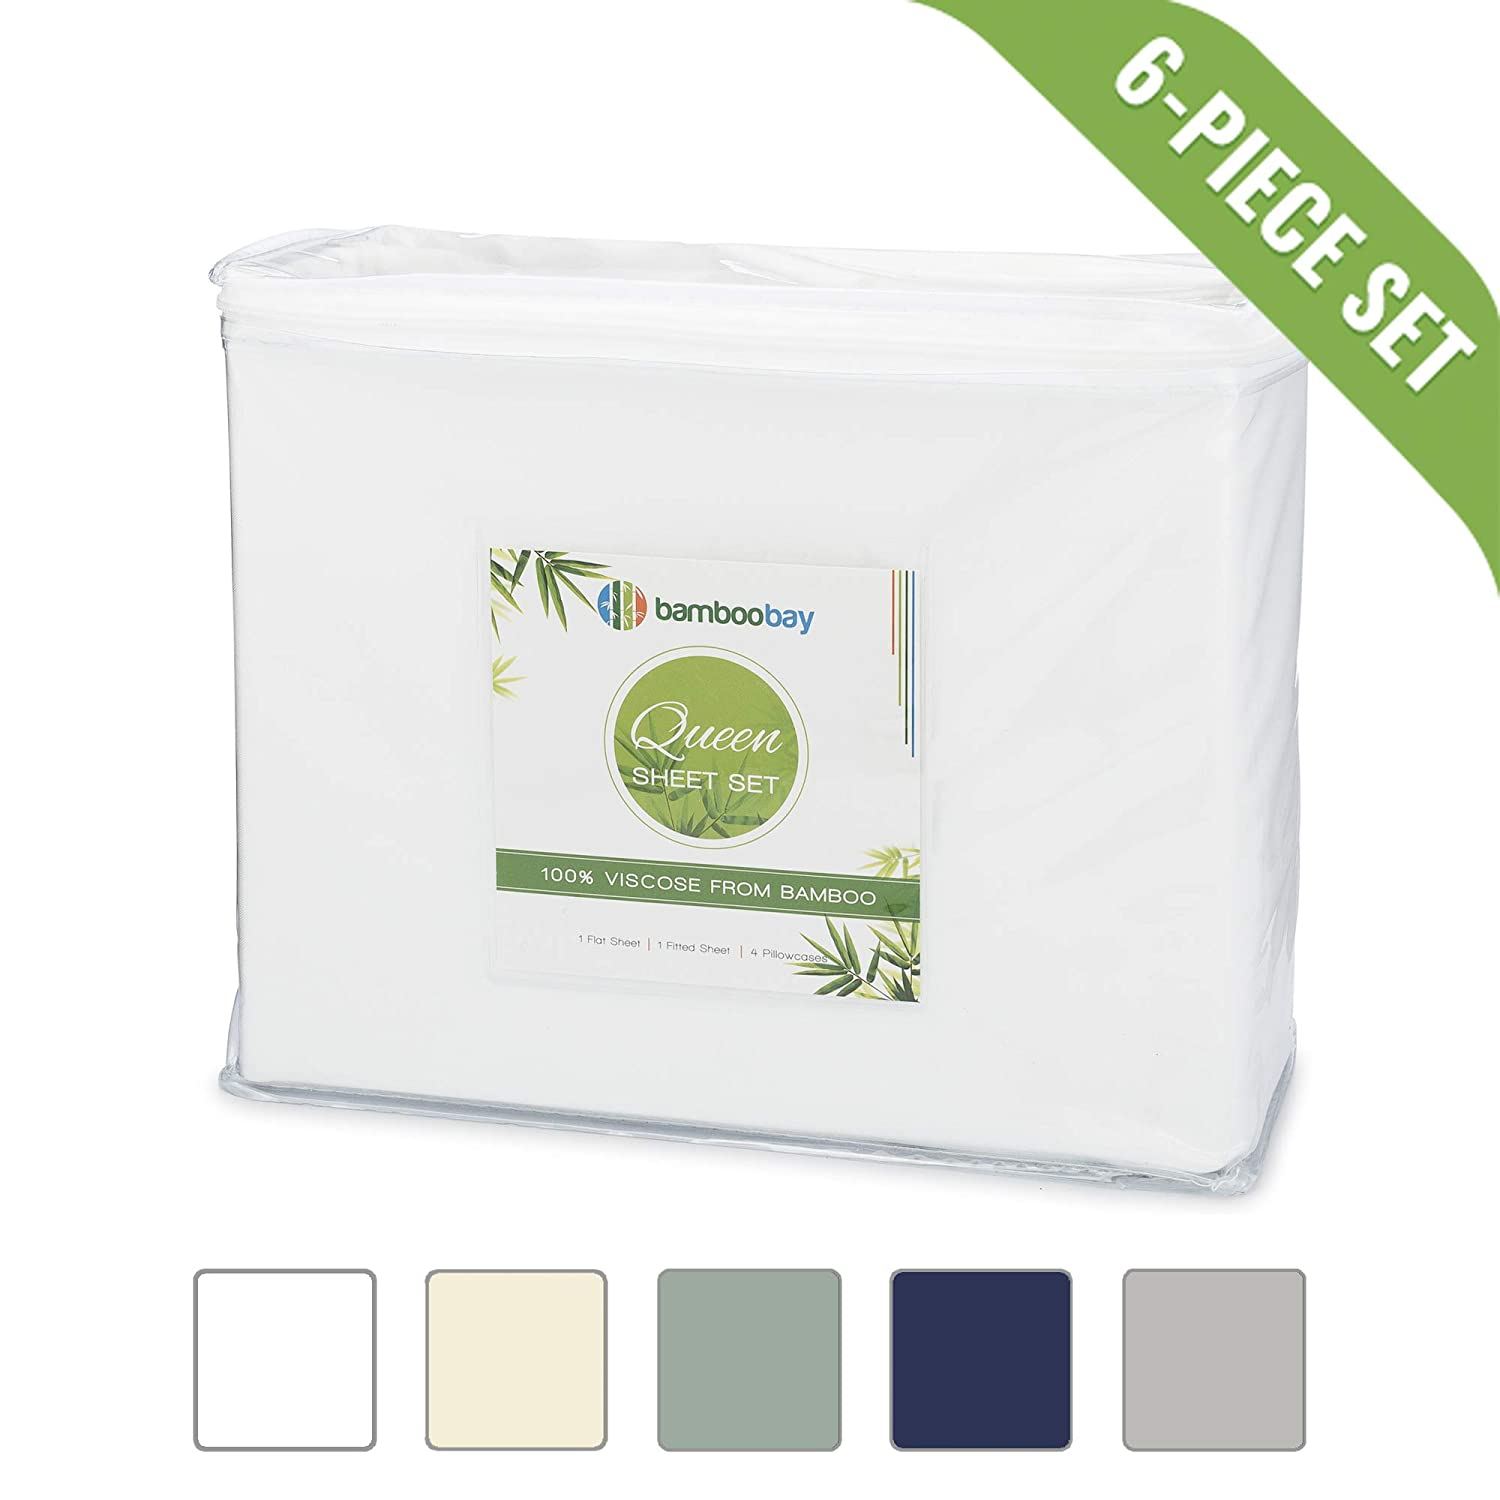 Bamboo Bay 100% Viscose from Bamboo Sheets - Hypoallergenic and Organic 6-Piece Bamboo Sheet Set - Extra Deep Pocket, No-Slip Fitted Sheet - Soft, Cool, and Durable (Queen, White)